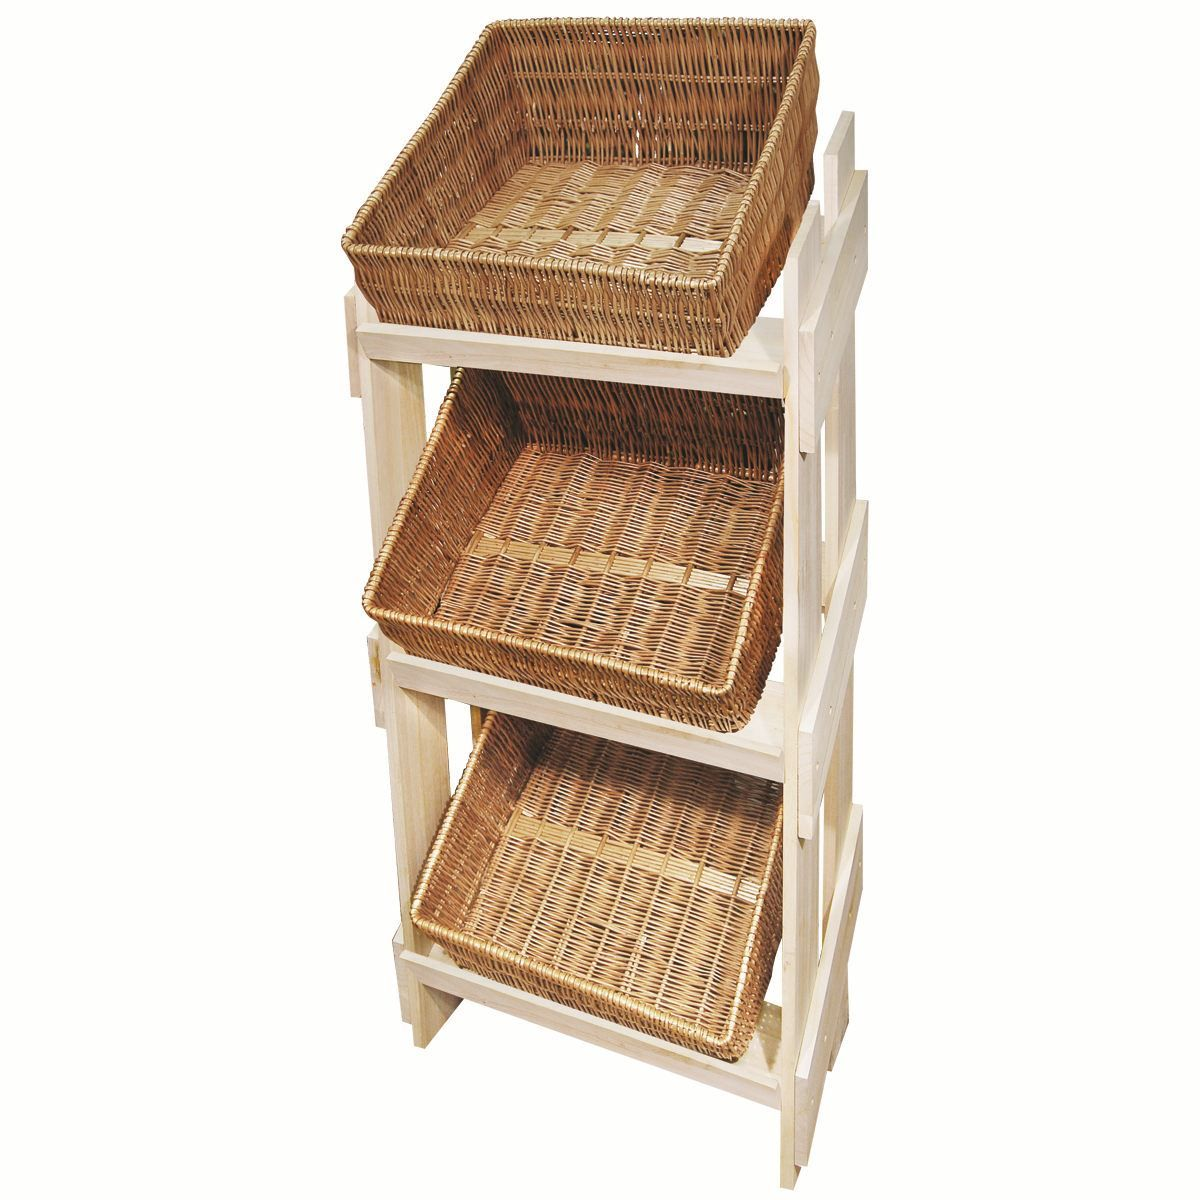 Retail Display Stands Wood & Wicker Display Stands